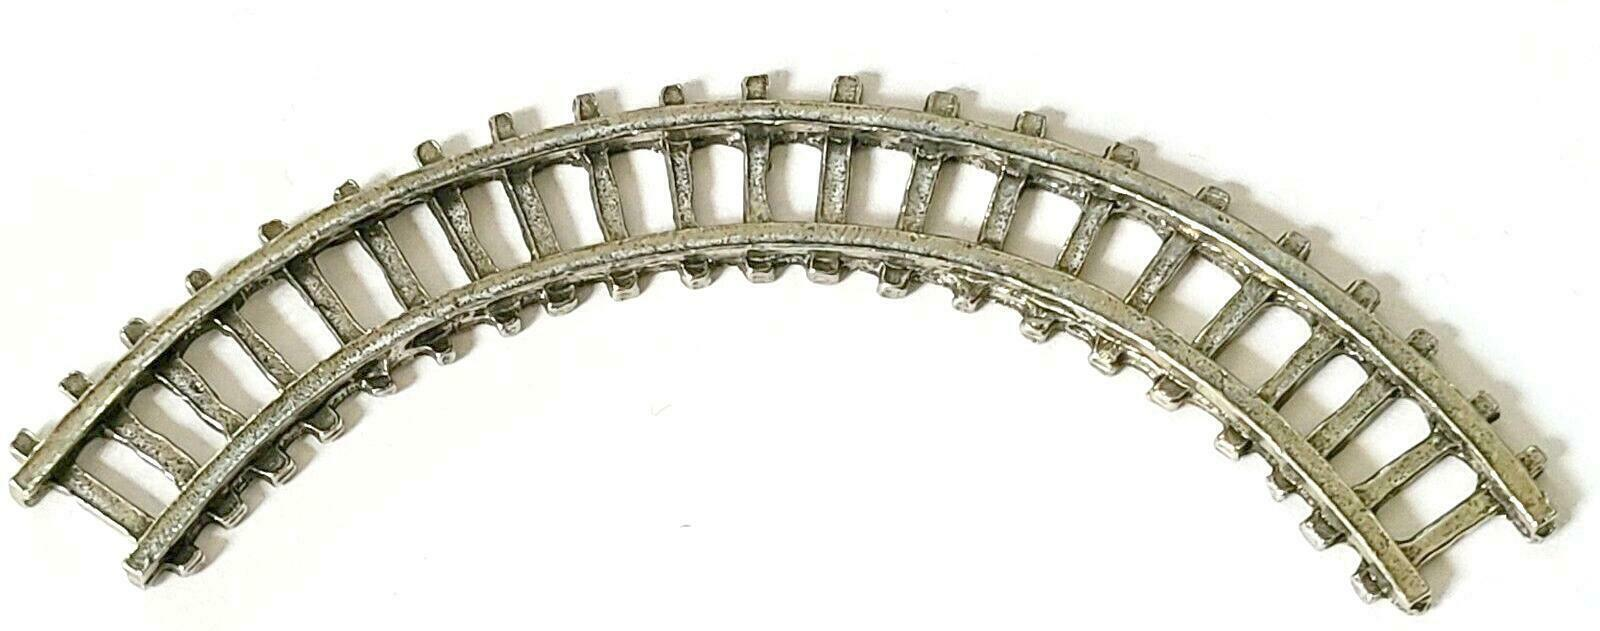 CURVED RAILROAD TRAIN TRACK FINE PEWTER - Approx 3 1/8 inches Long (T168)